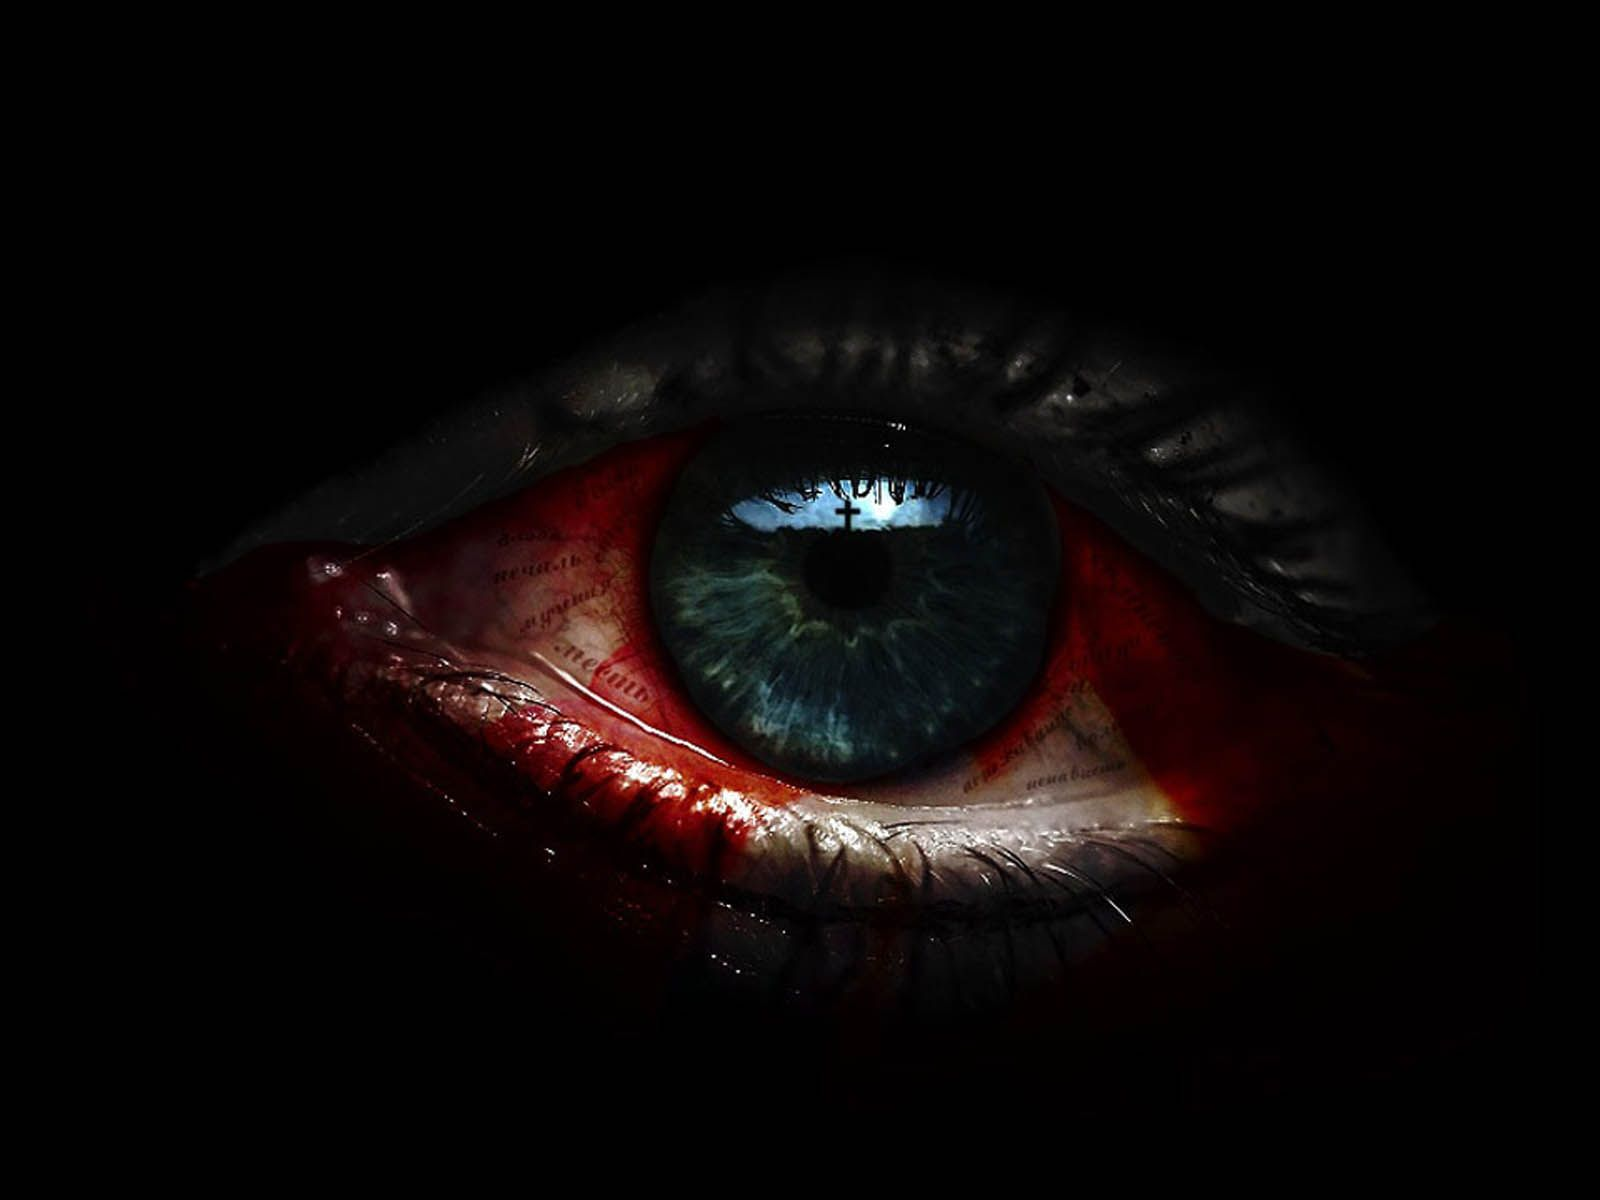 Wallpapers Horror Eye Wallpapers Scary Eyes Eyes Wallpaper Scary Wallpaper